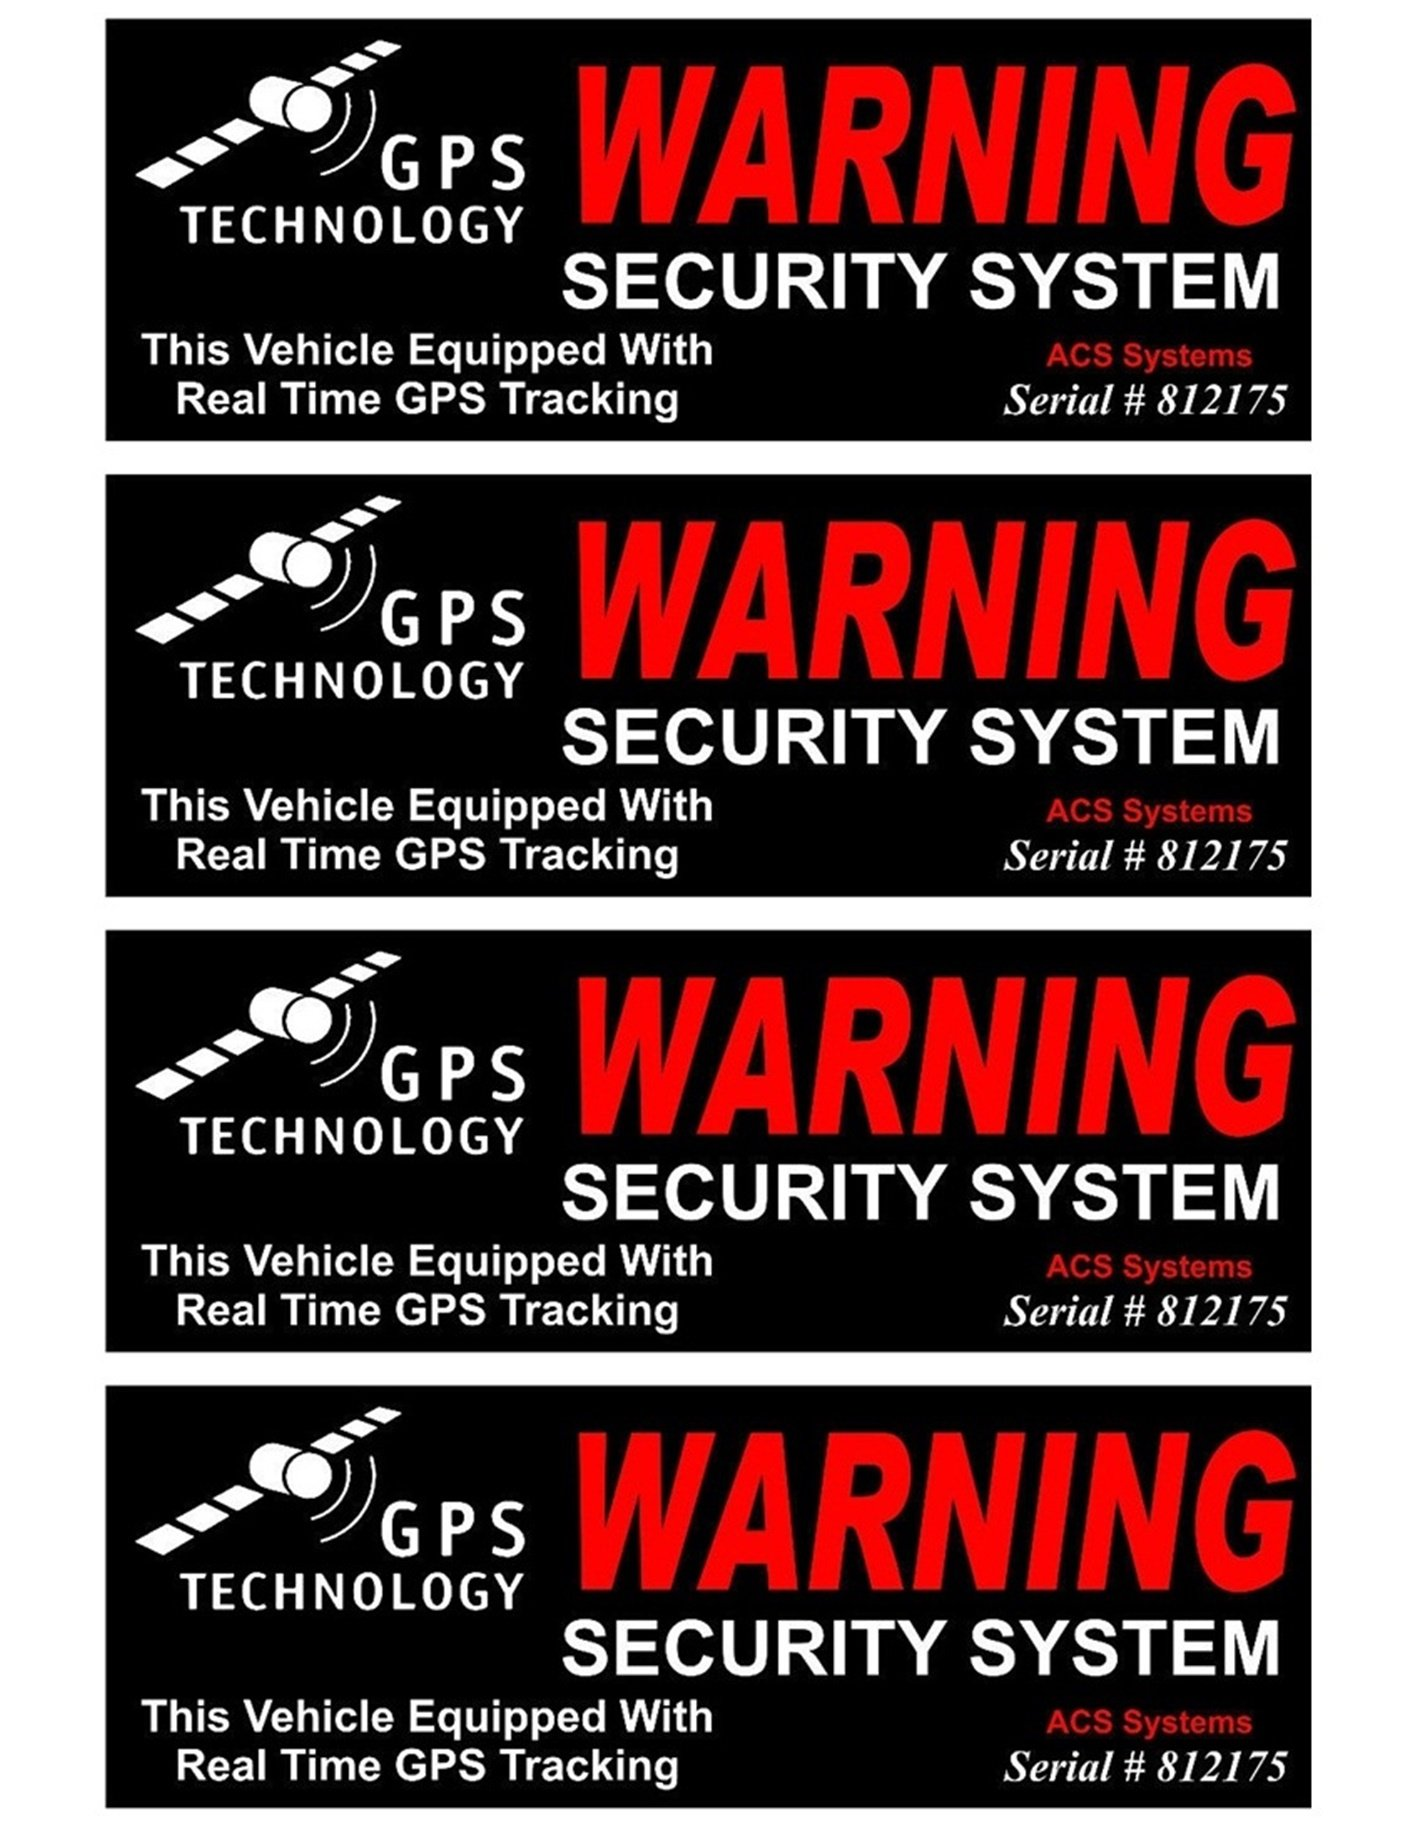 4 Pc Convincing Unique Warning GPS Tracking Security System Technology This Vehicle Equipped with Real Time Inside Adhesive Sticker Sign Window Premises Hour Trespassing House Neighbor Size 4.5''x1.5''